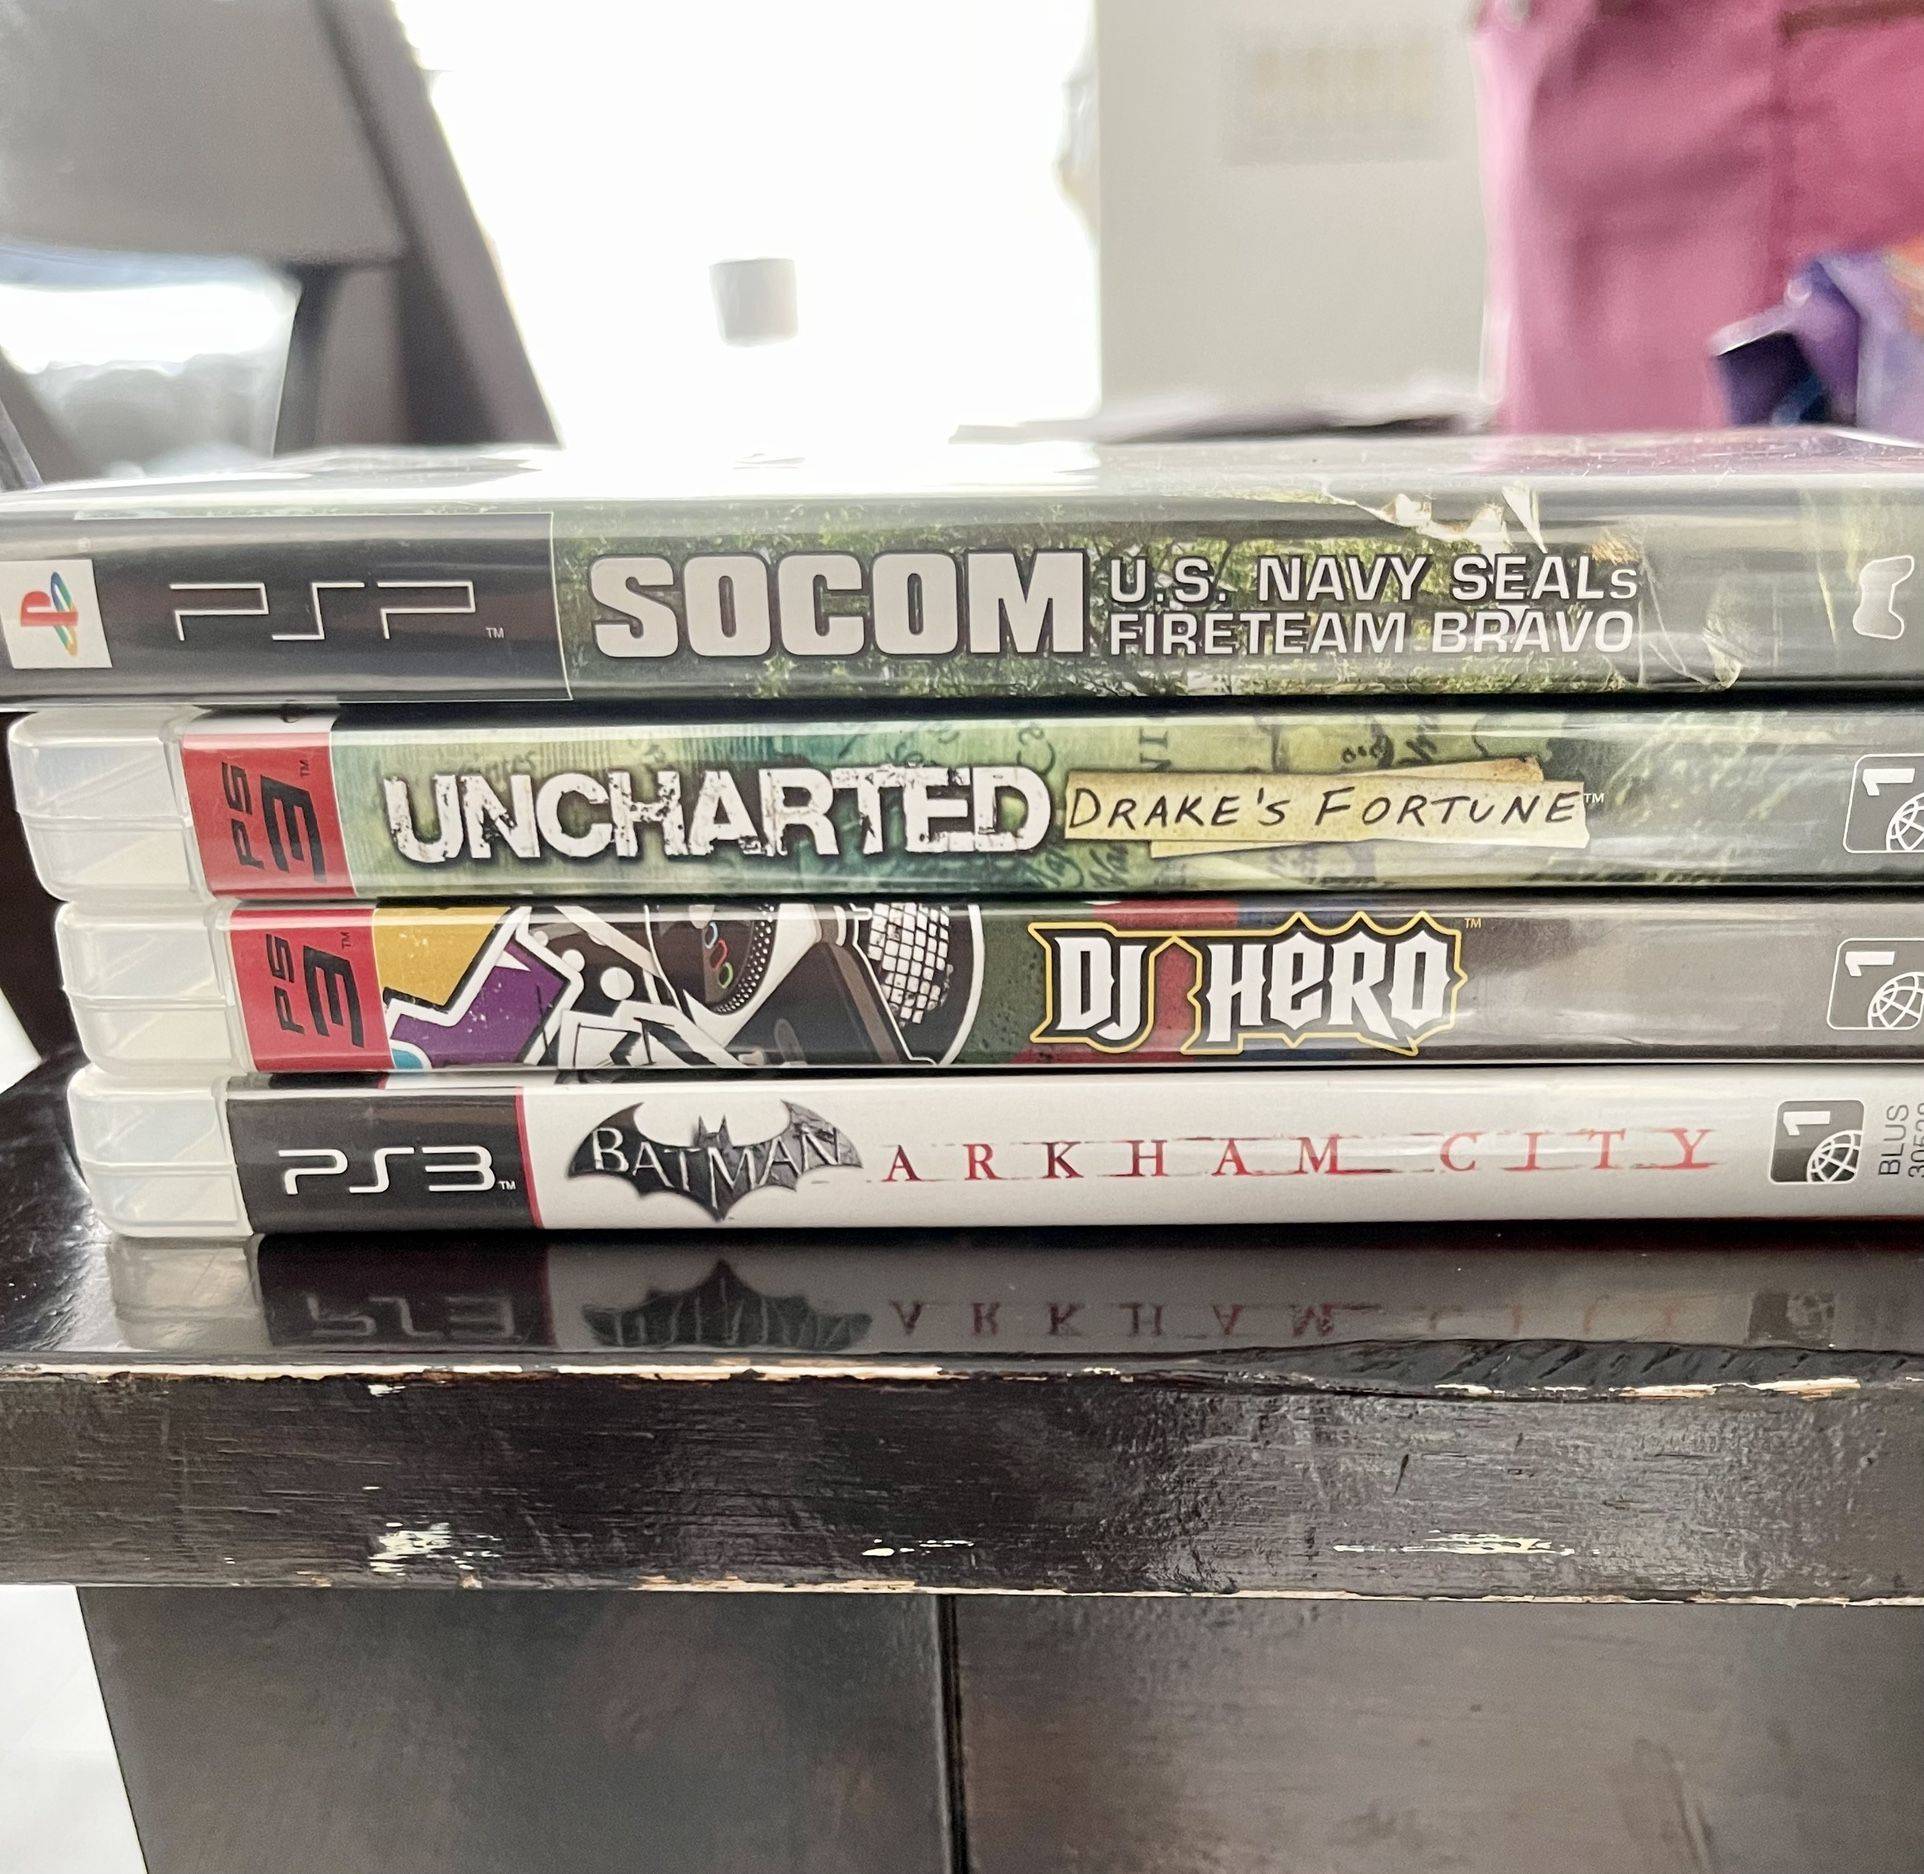 PS3 Console, PS2 console, PS3 & PS2 Games $5-15 Each